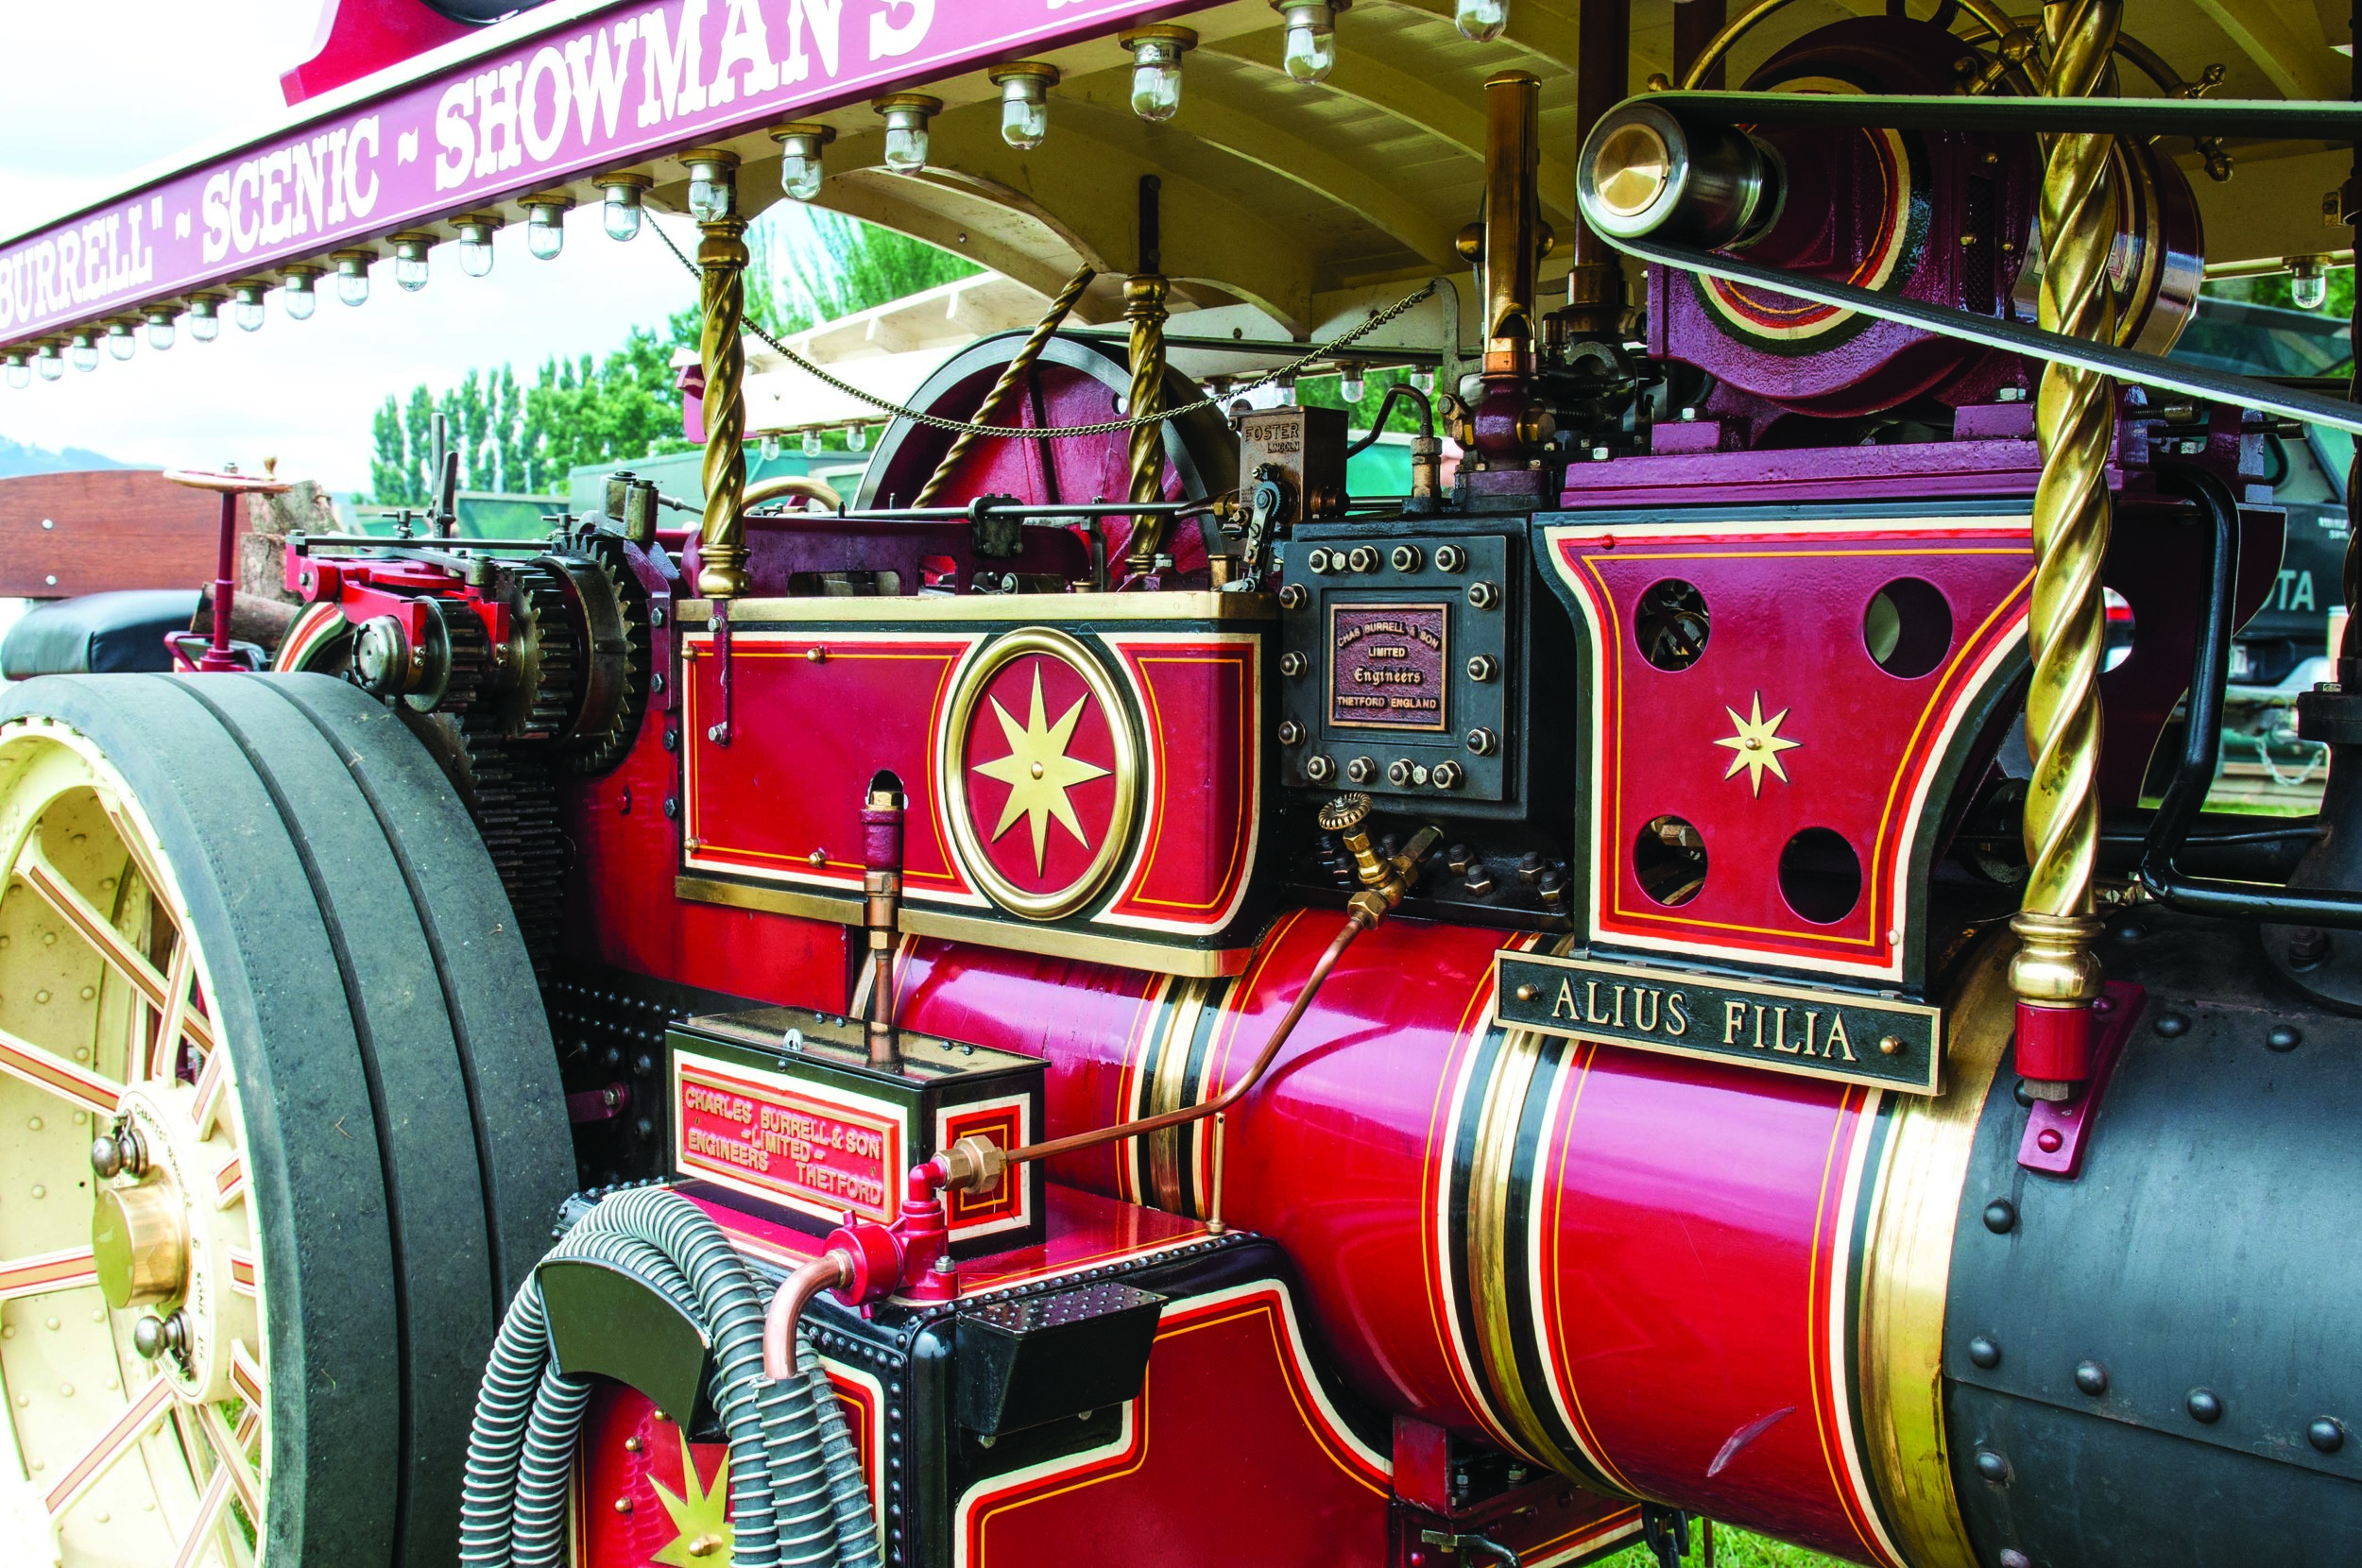 Win's award-winning Burrell Scenic Showman's road locomotive has featured in Australian and English model engineering magazines and been compared with the 1921 Lord Lascelles, regarded as one of finest models on the UK rally circuit